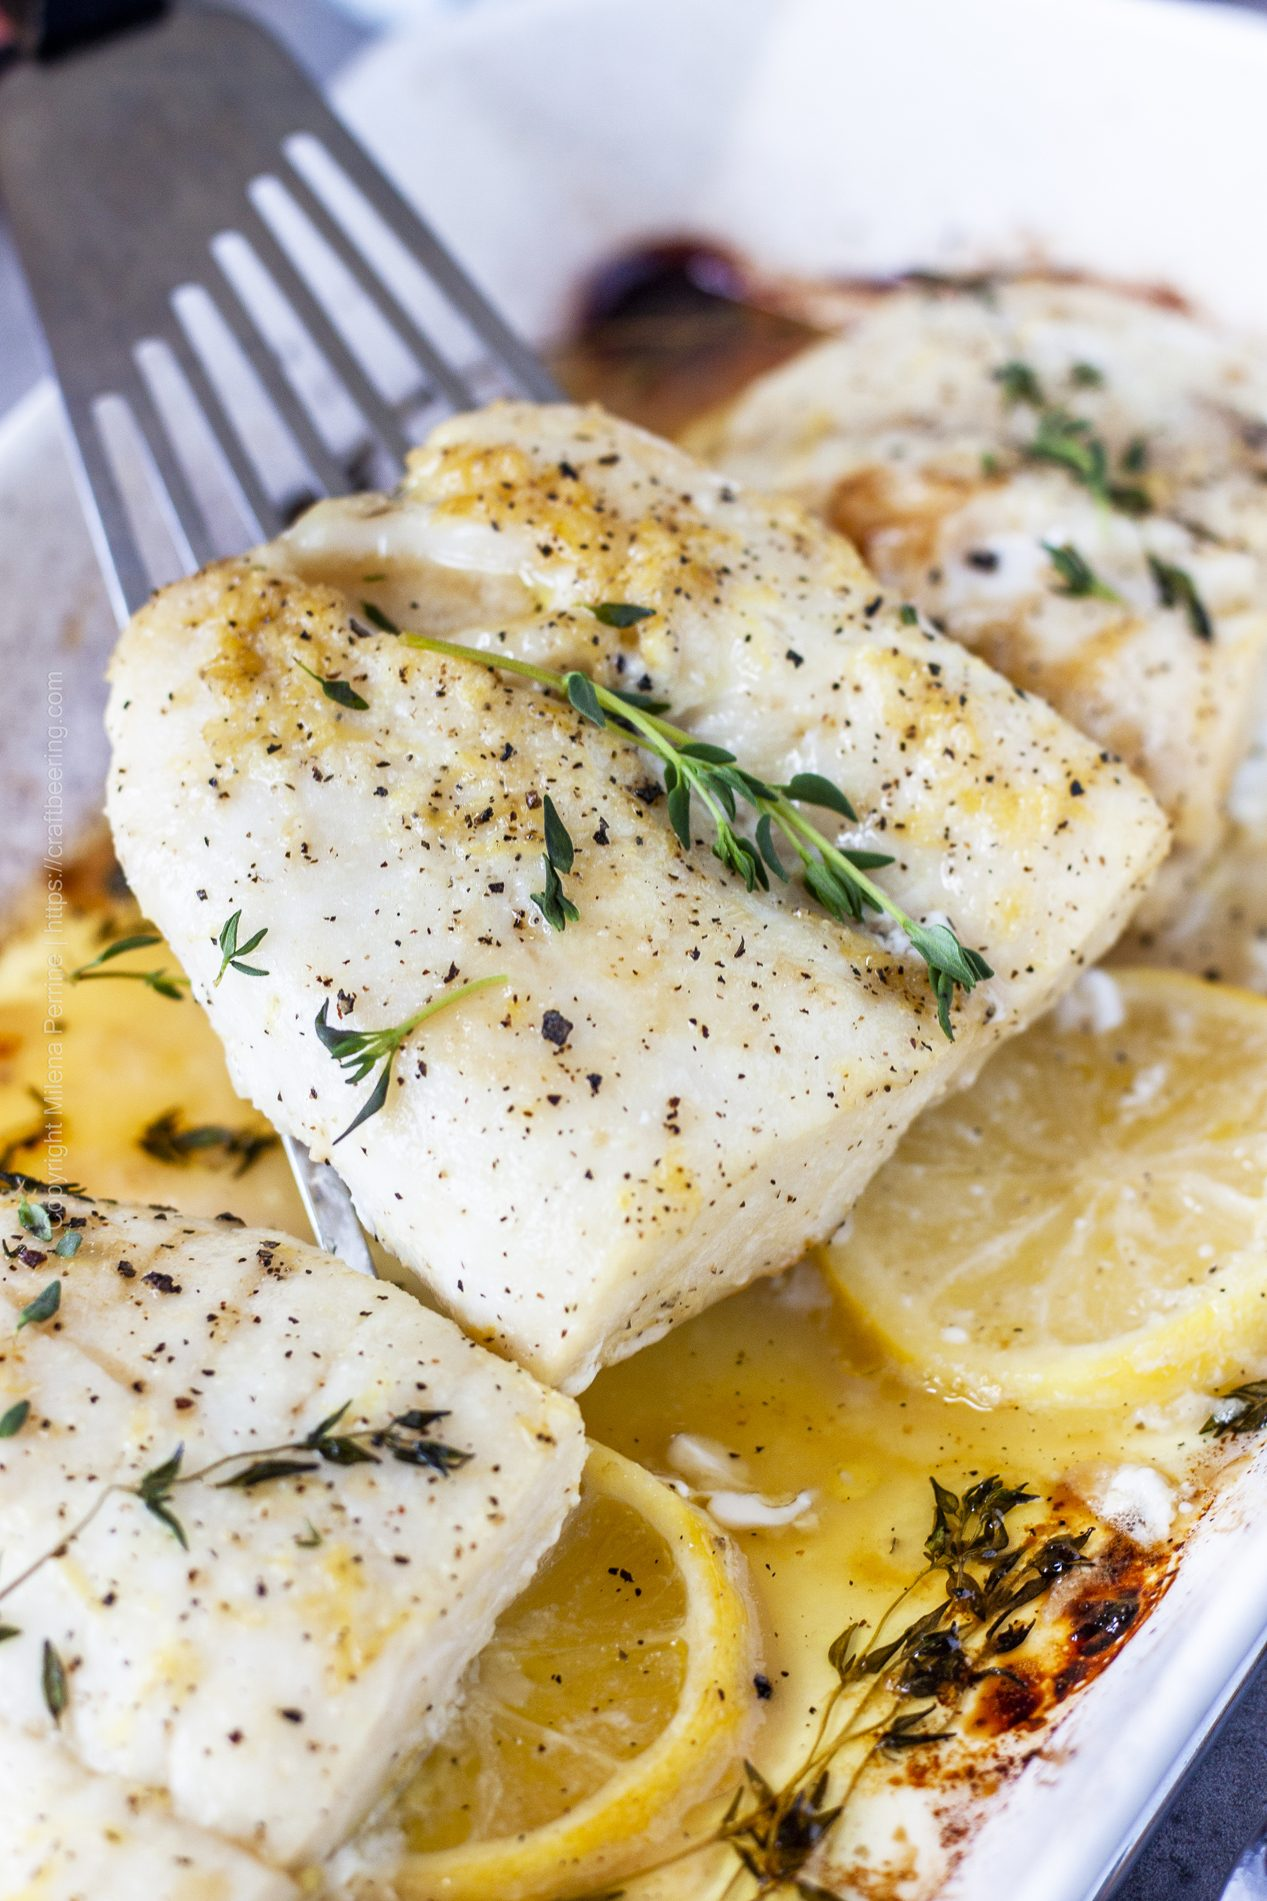 Baked cod fillets in oven with lemon and thyme.